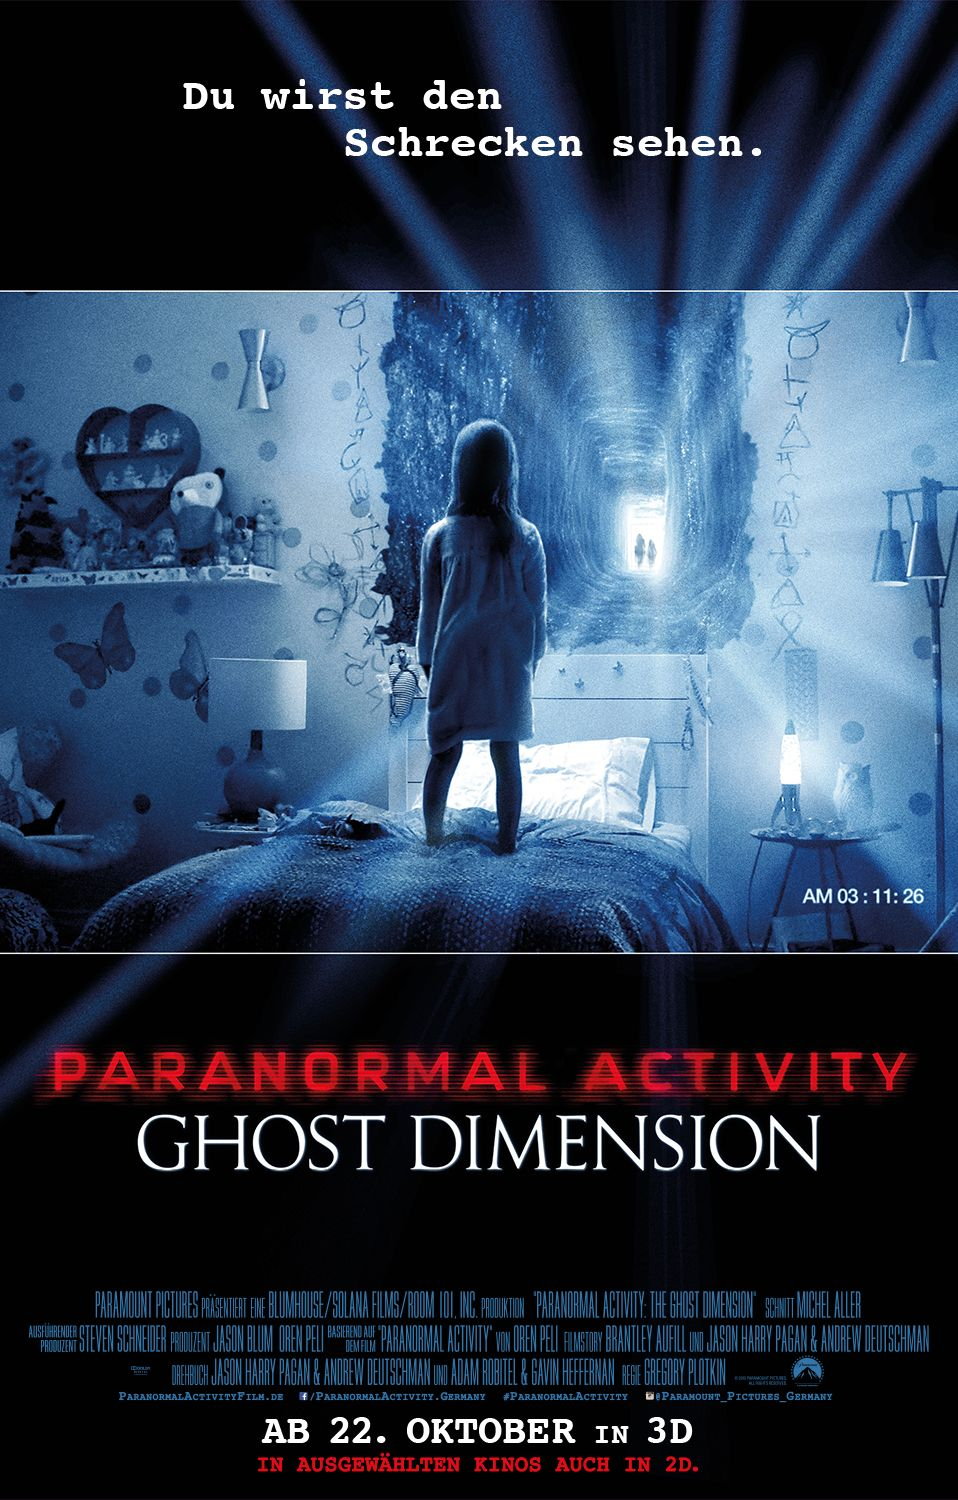 Paranormal Activity - Ghost Dimension 3D Plakat